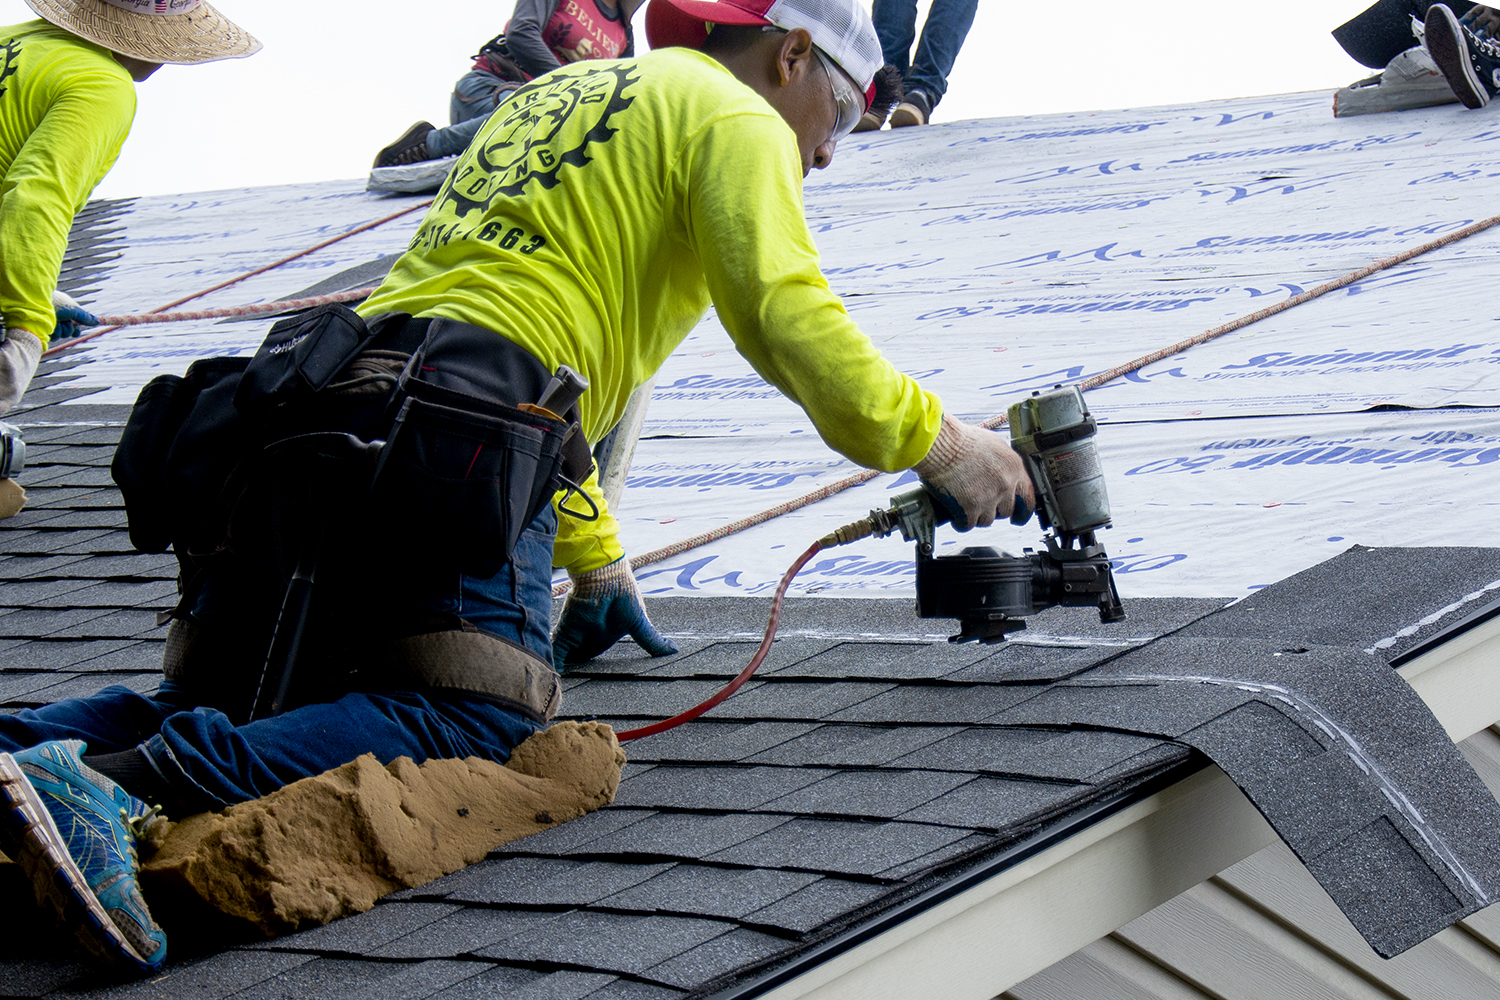 NV45AB2 Roofing Nailer Action